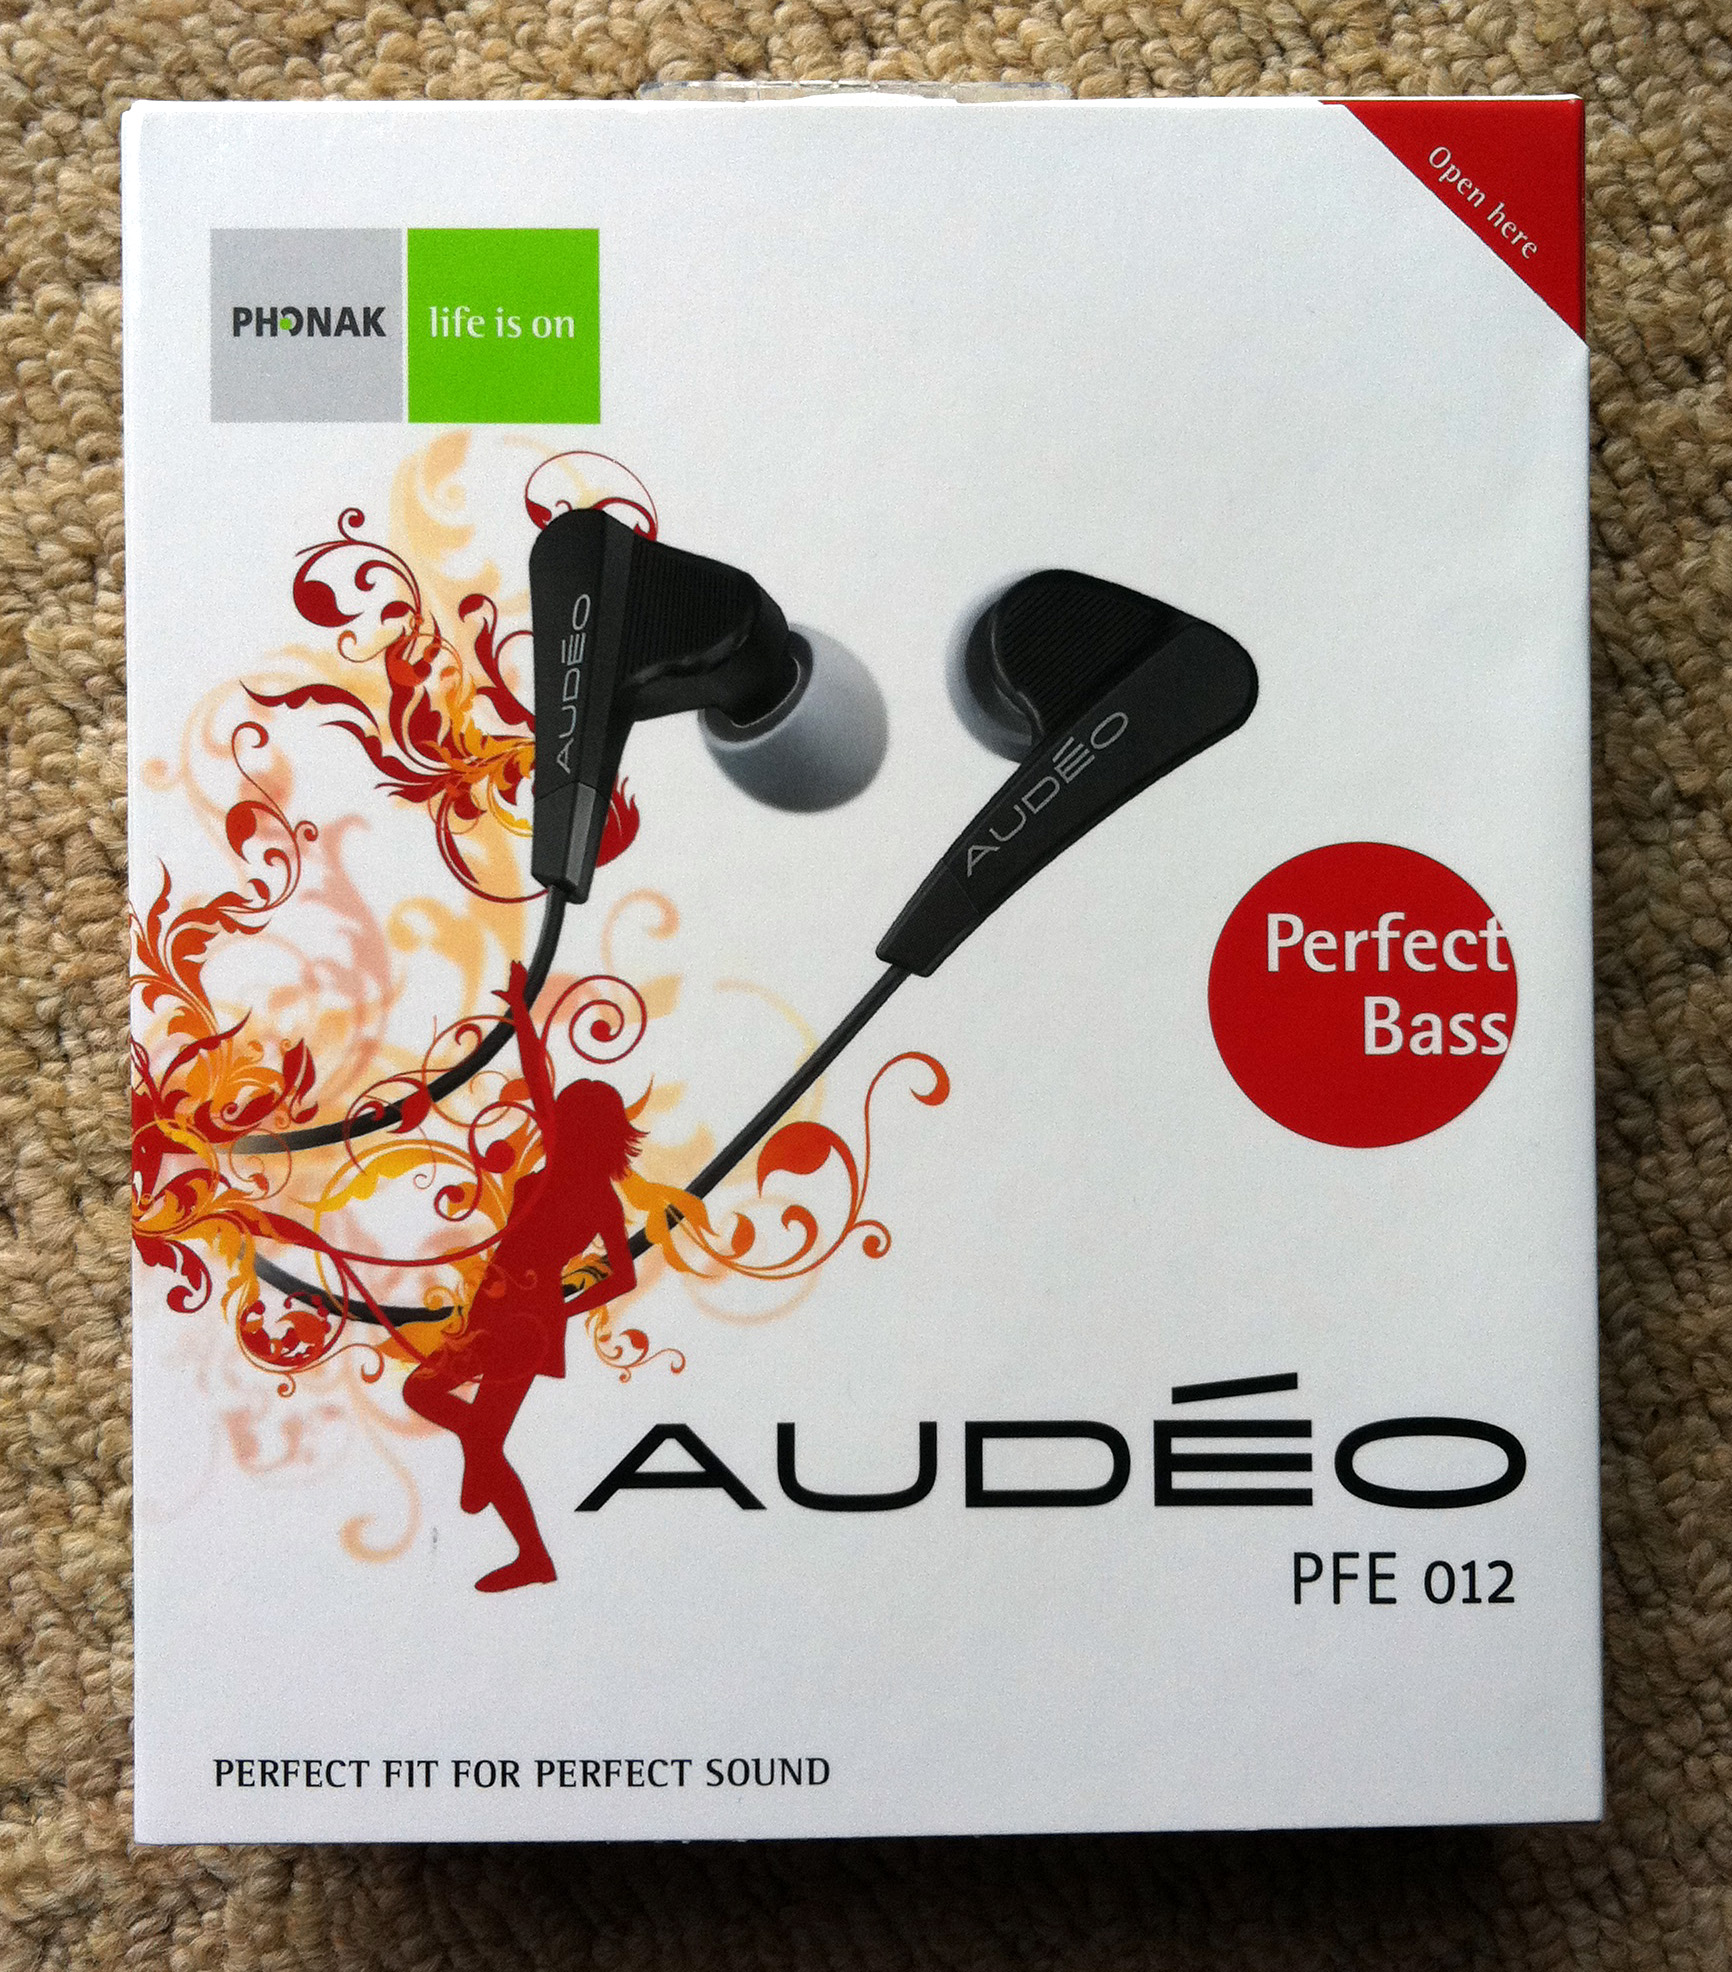 Phonak Audeo Perfect Bass Earphones